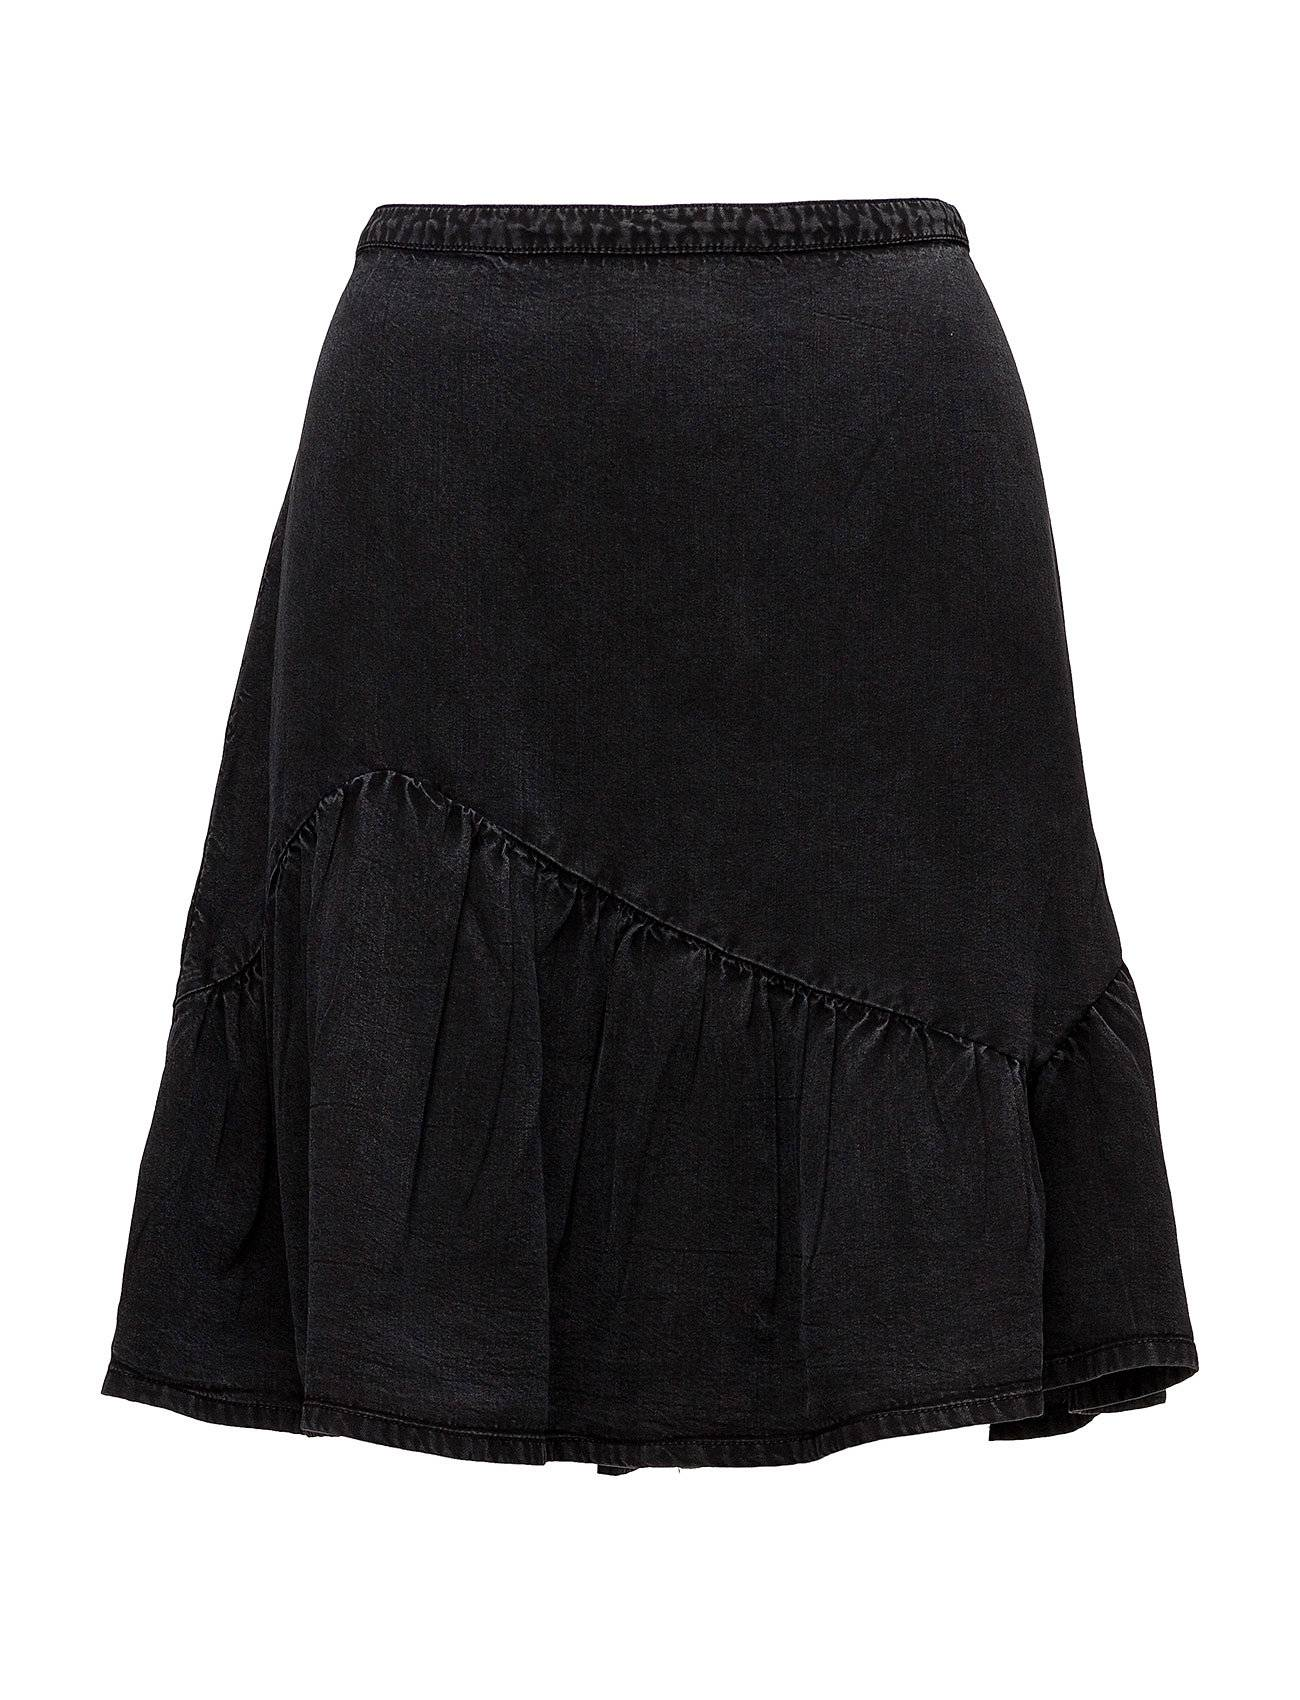 EDC by Esprit Skirts Light Woven